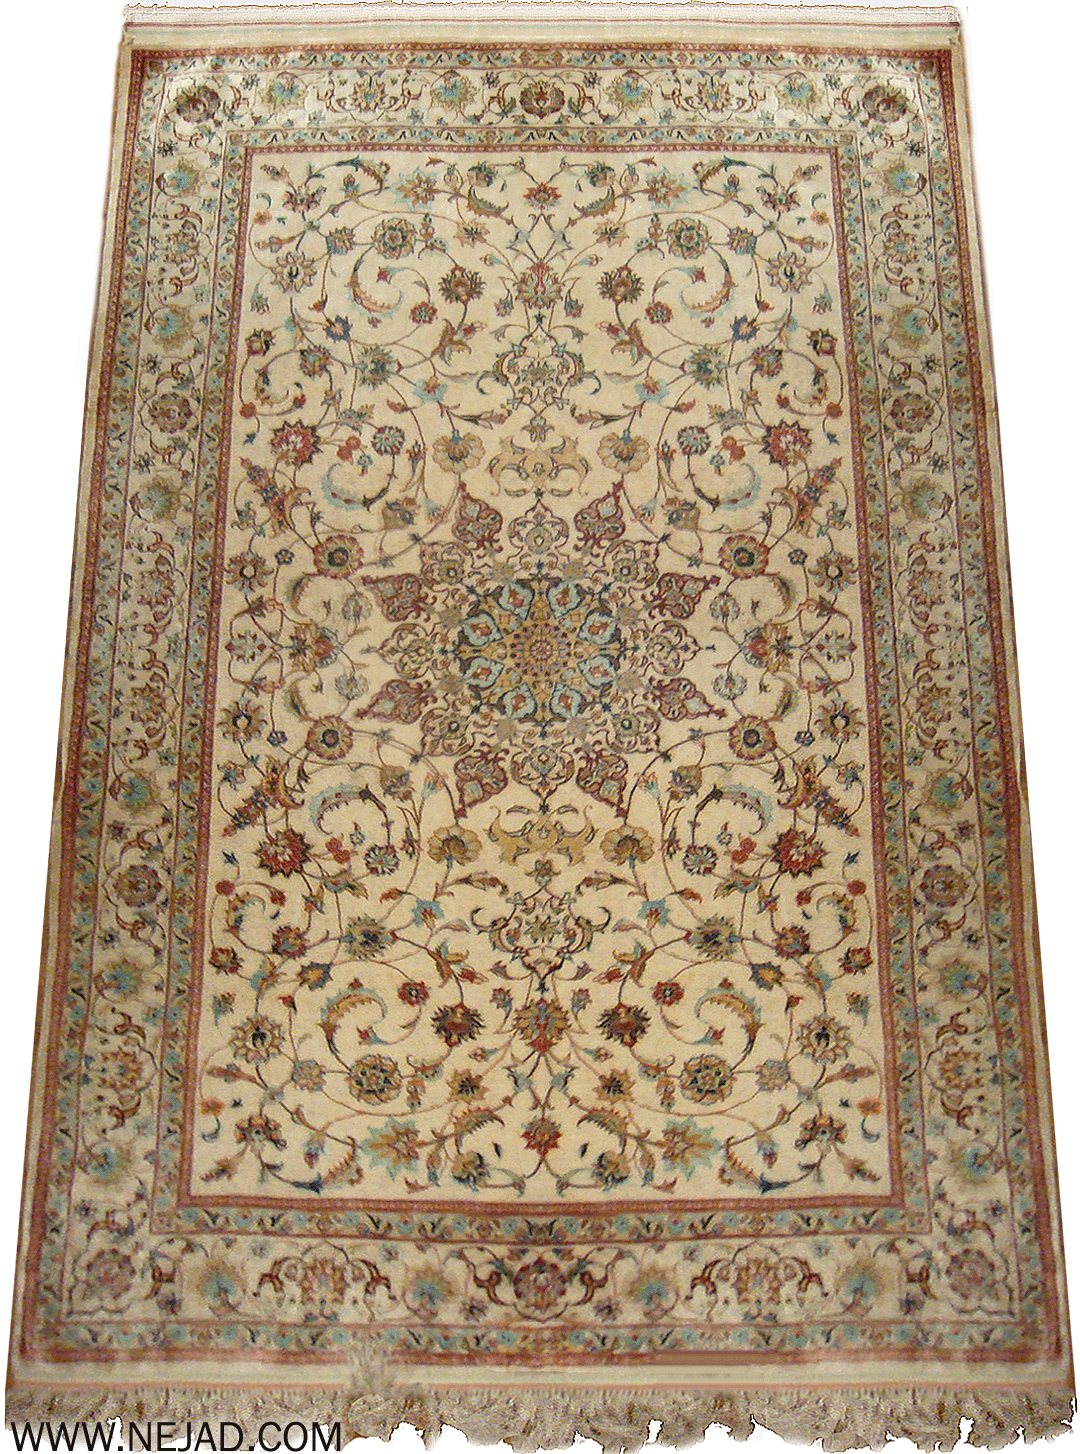 Antique Persian Silk Ghoum Rug - Nejad Rugs #23652